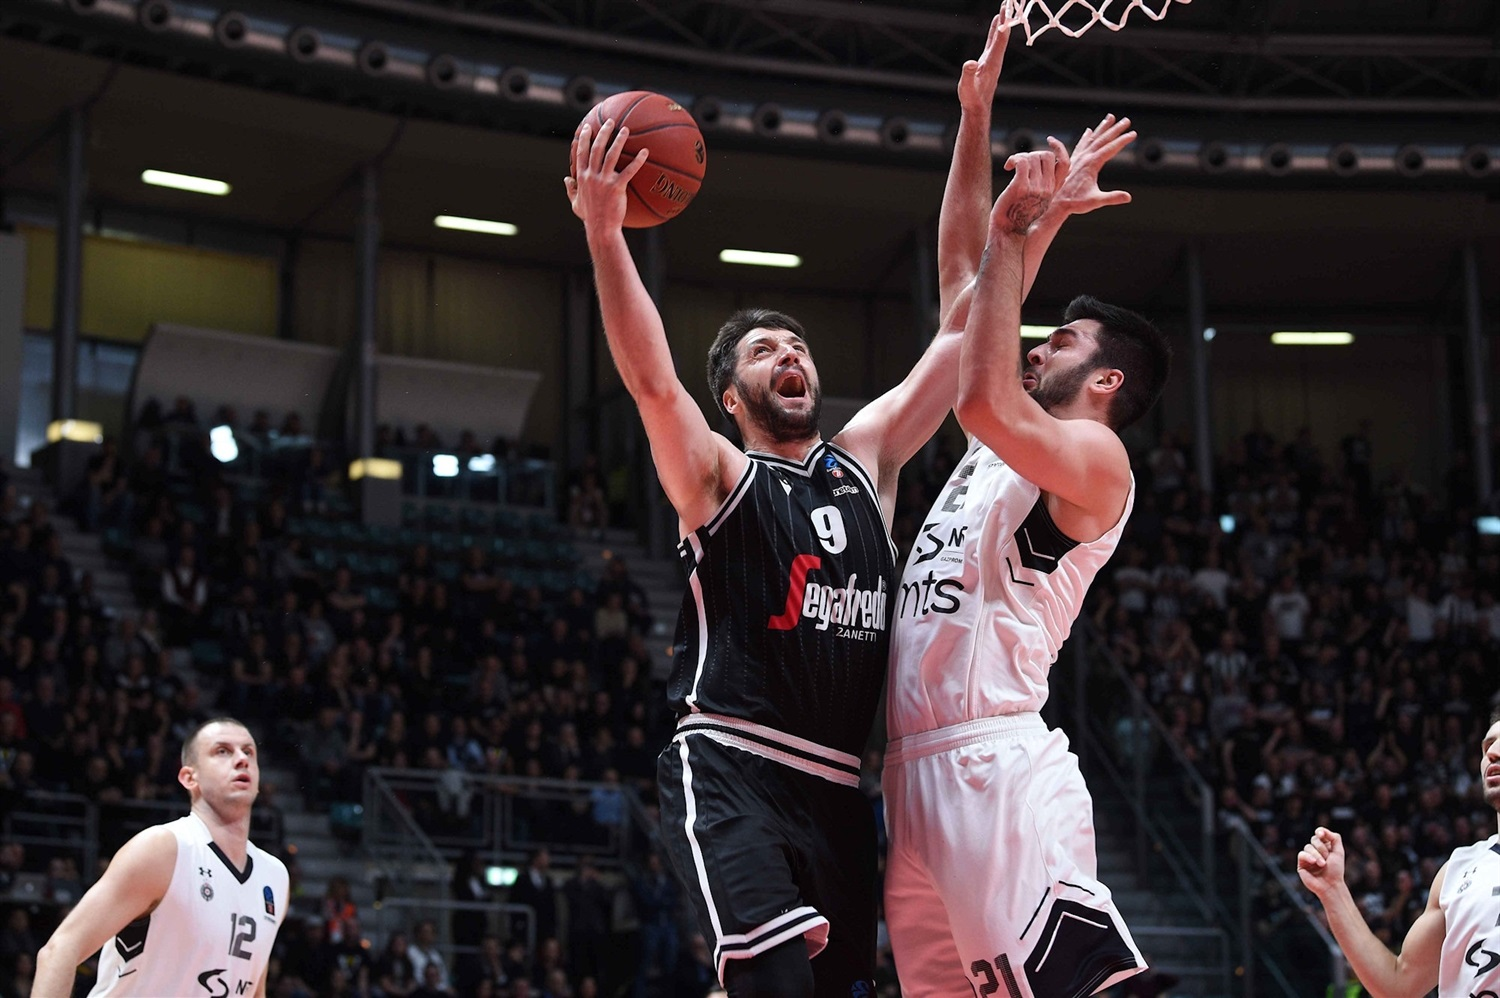 Stefan Markovic - Segafredo Virtus Bologna (photo Massimo Ceretti - Virtus) - EC19